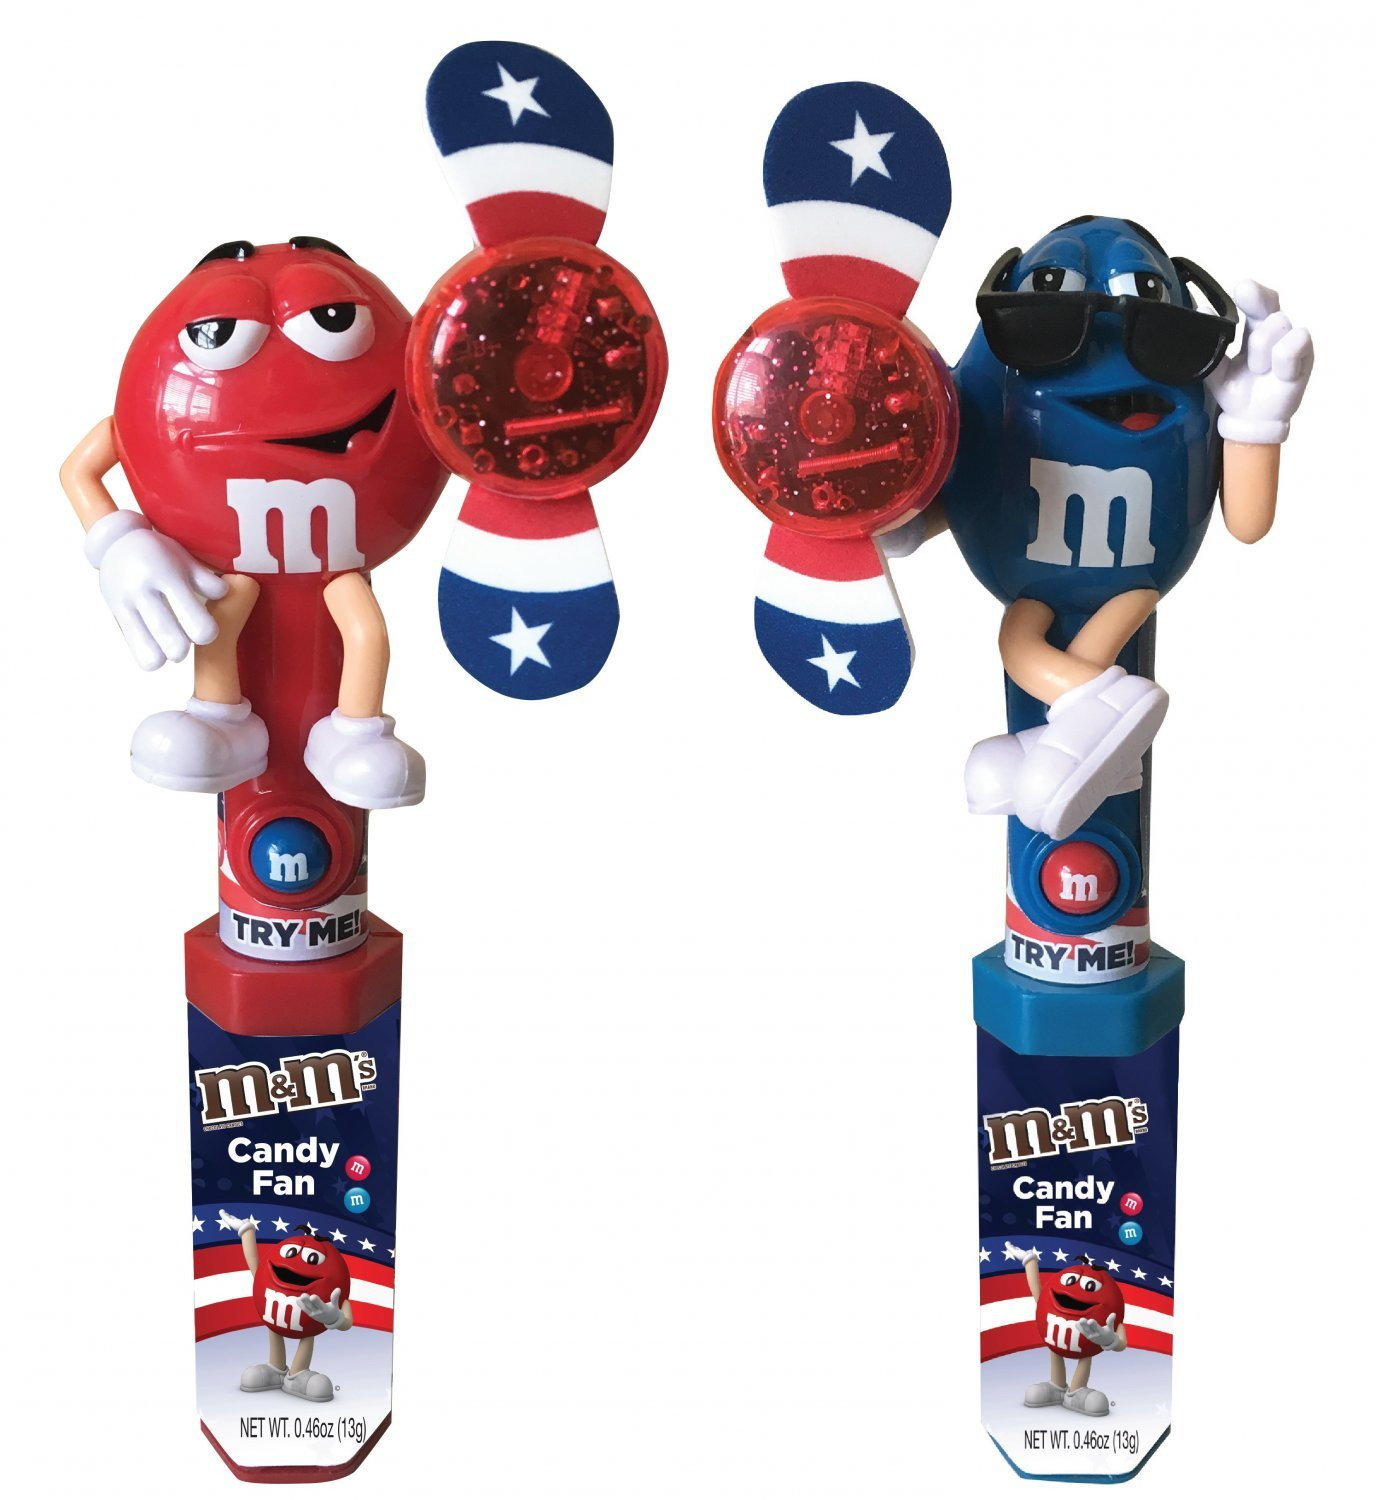 M&M's M&M'S ® Red, White & Blue Character Fan